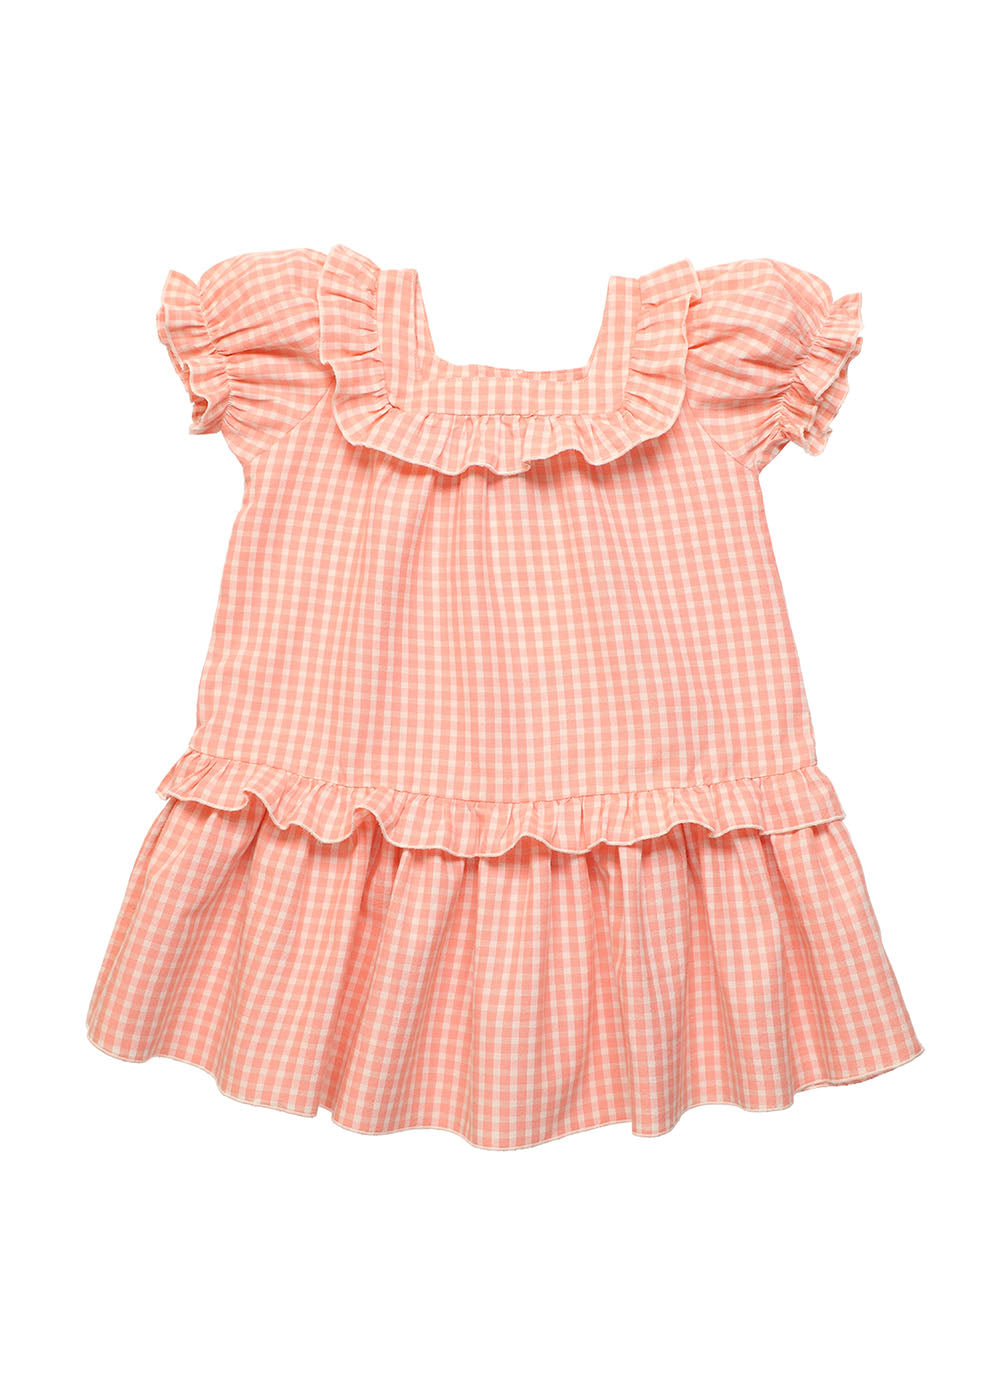 Rachel baby coral check dress